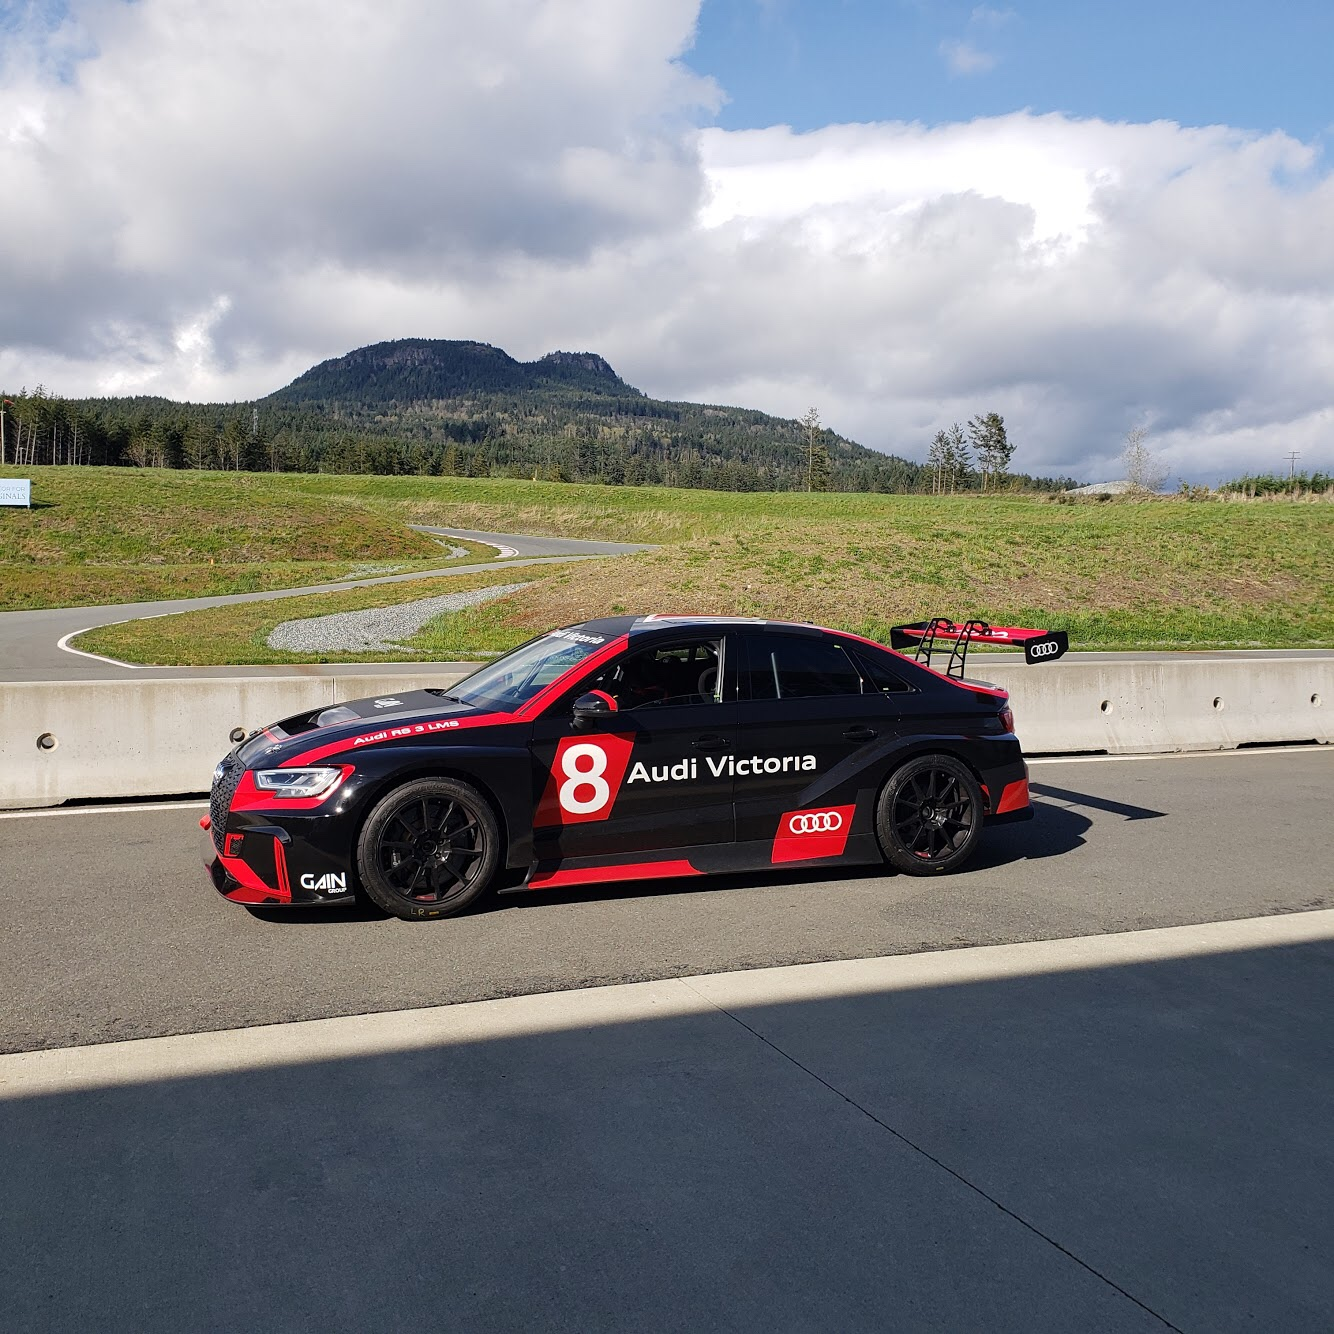 Vancouver Island Motorsport Circuit - BC - Canada - Vancouver Island - Villa Eyrie - Cowichan Tourism - British Columbia